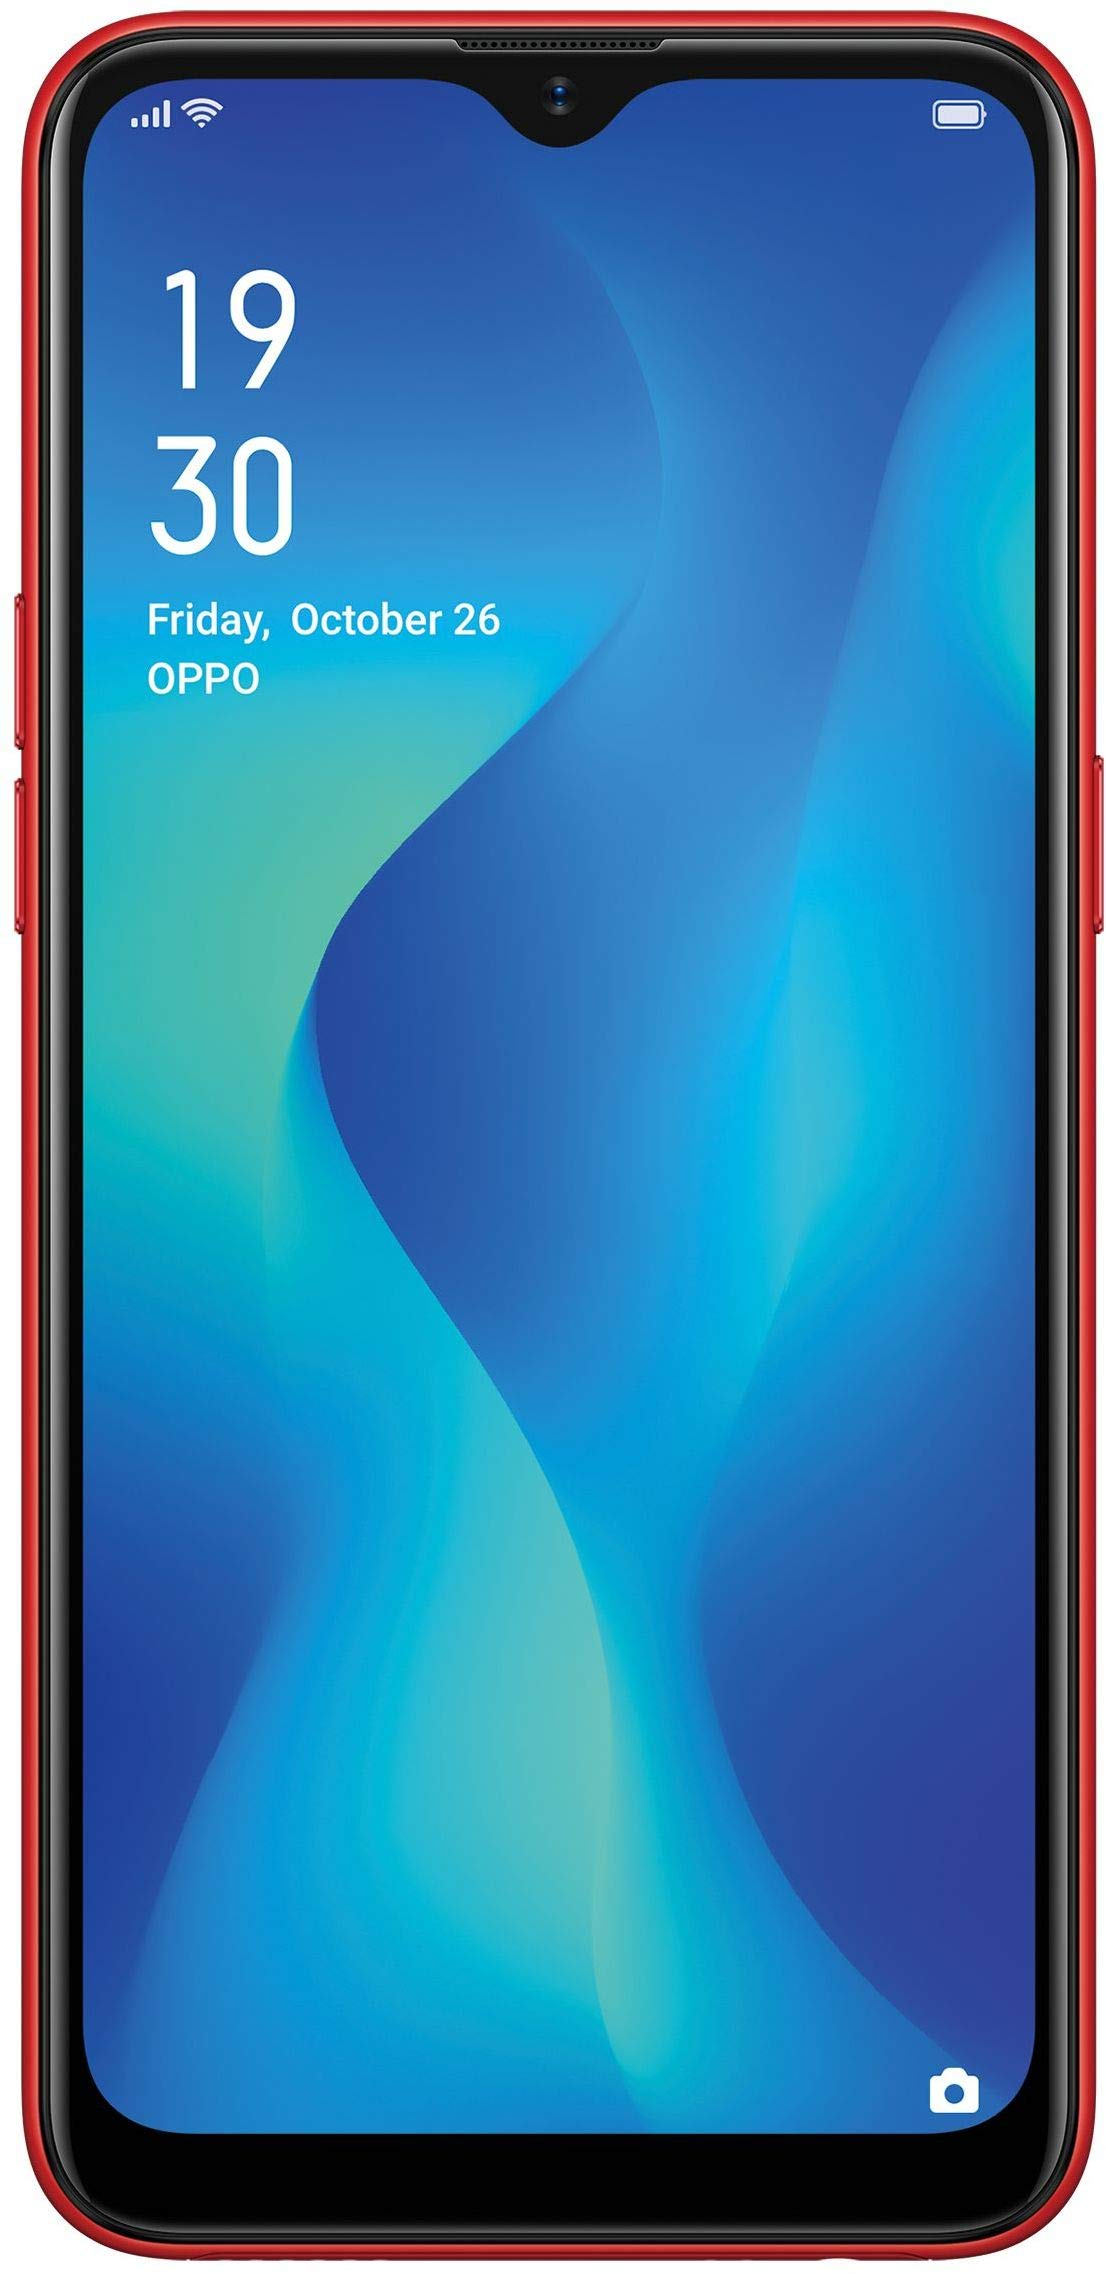 OPPO A1K (Red, 2GB RAM, 32GB Storage)